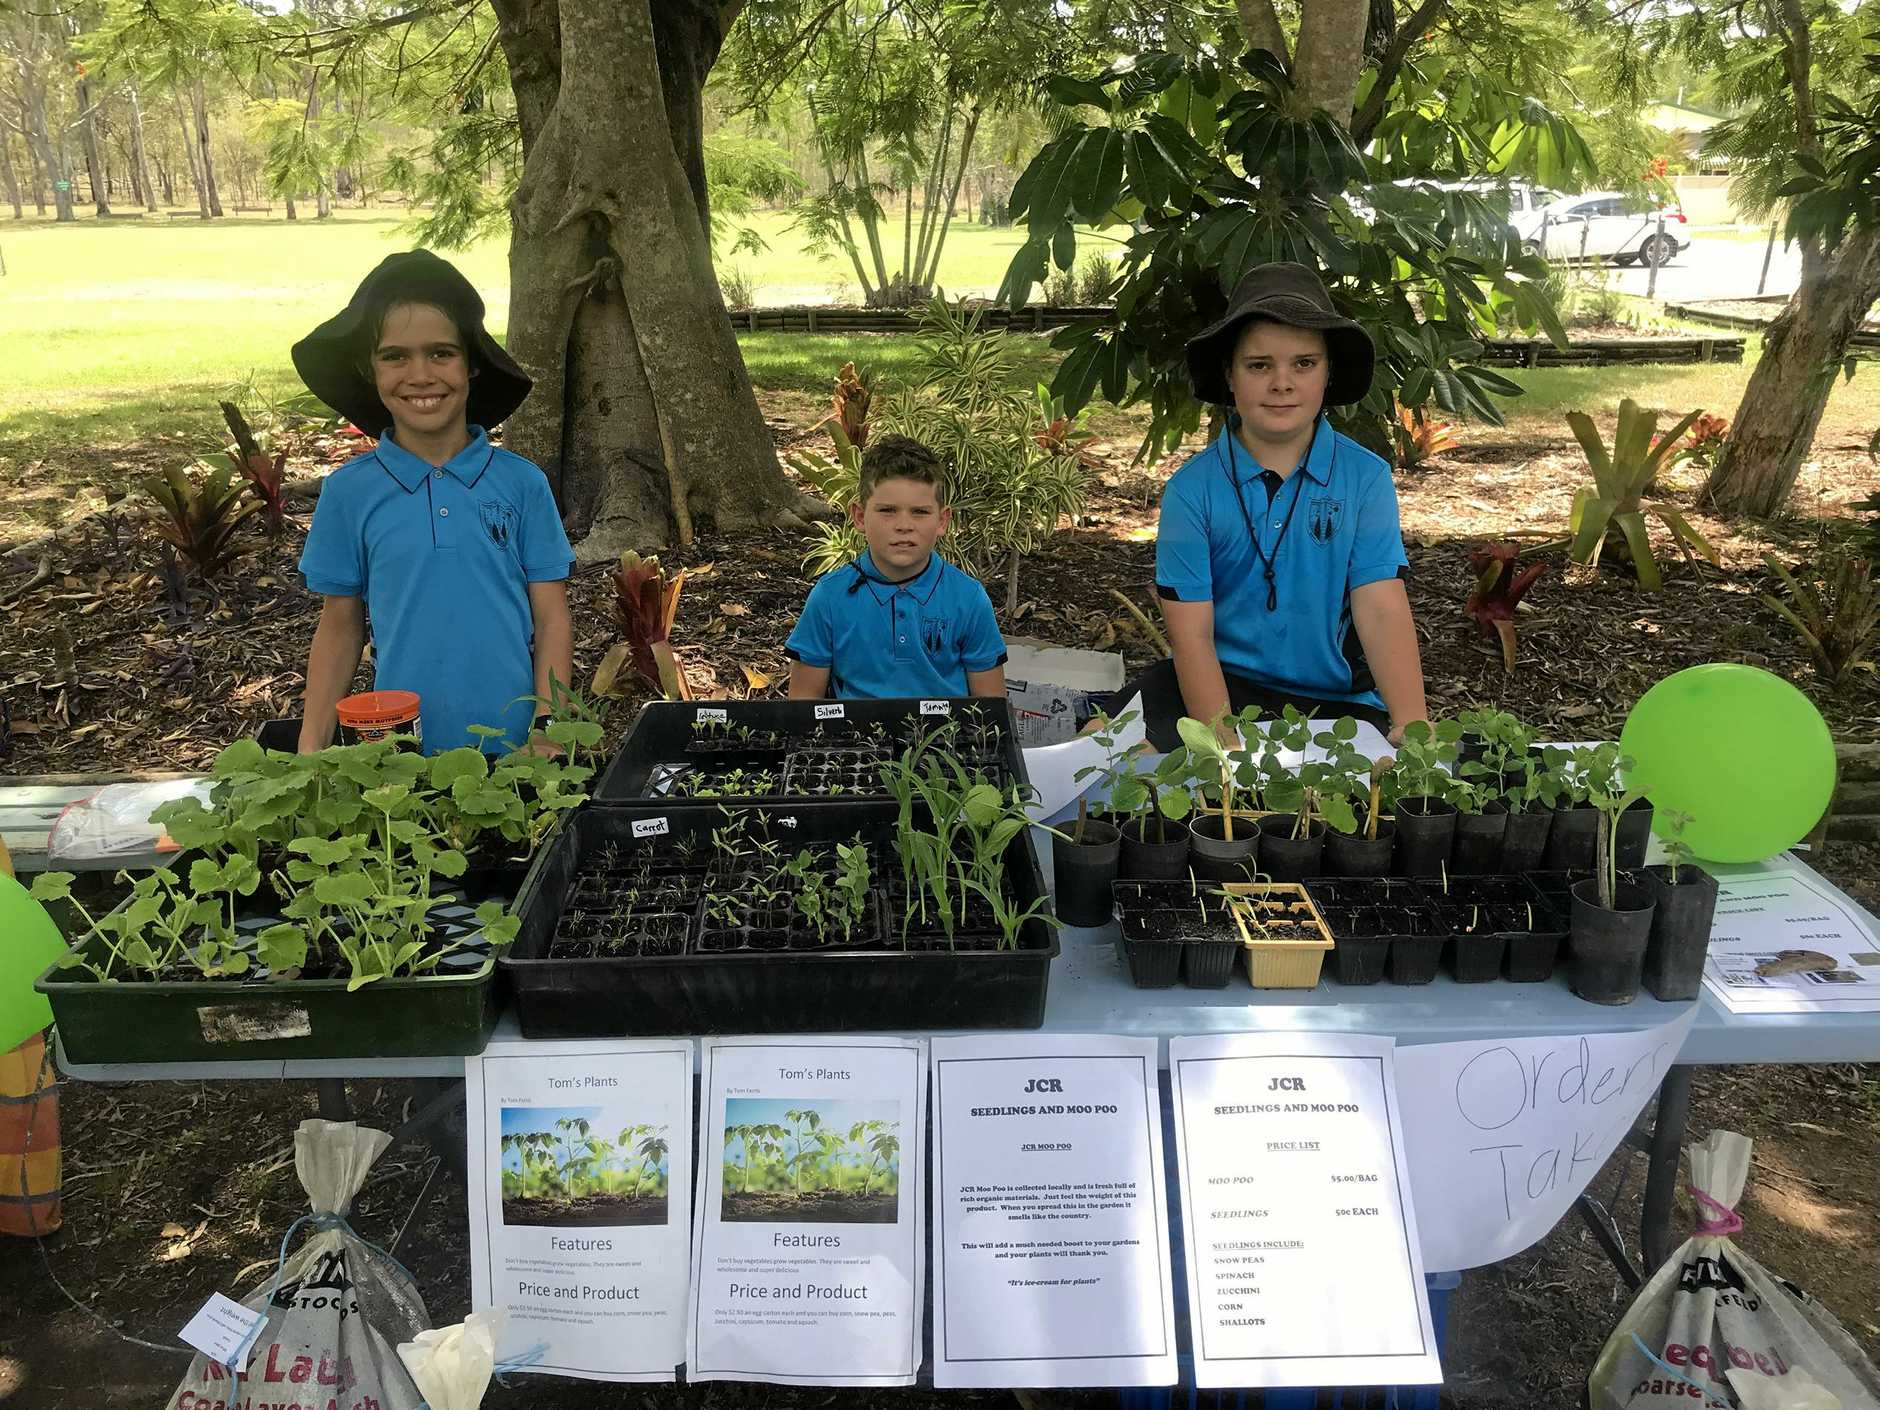 BUSINESS SAVVY: Year 5s Tom Ferris with Tom's Plants, Cooper Filian with Cooper's Can Collection and Jack Ritchie with JCR Seedlings and Moo Poo at the Bororen State School Market Day held as part of the EarlyPrenuer program.